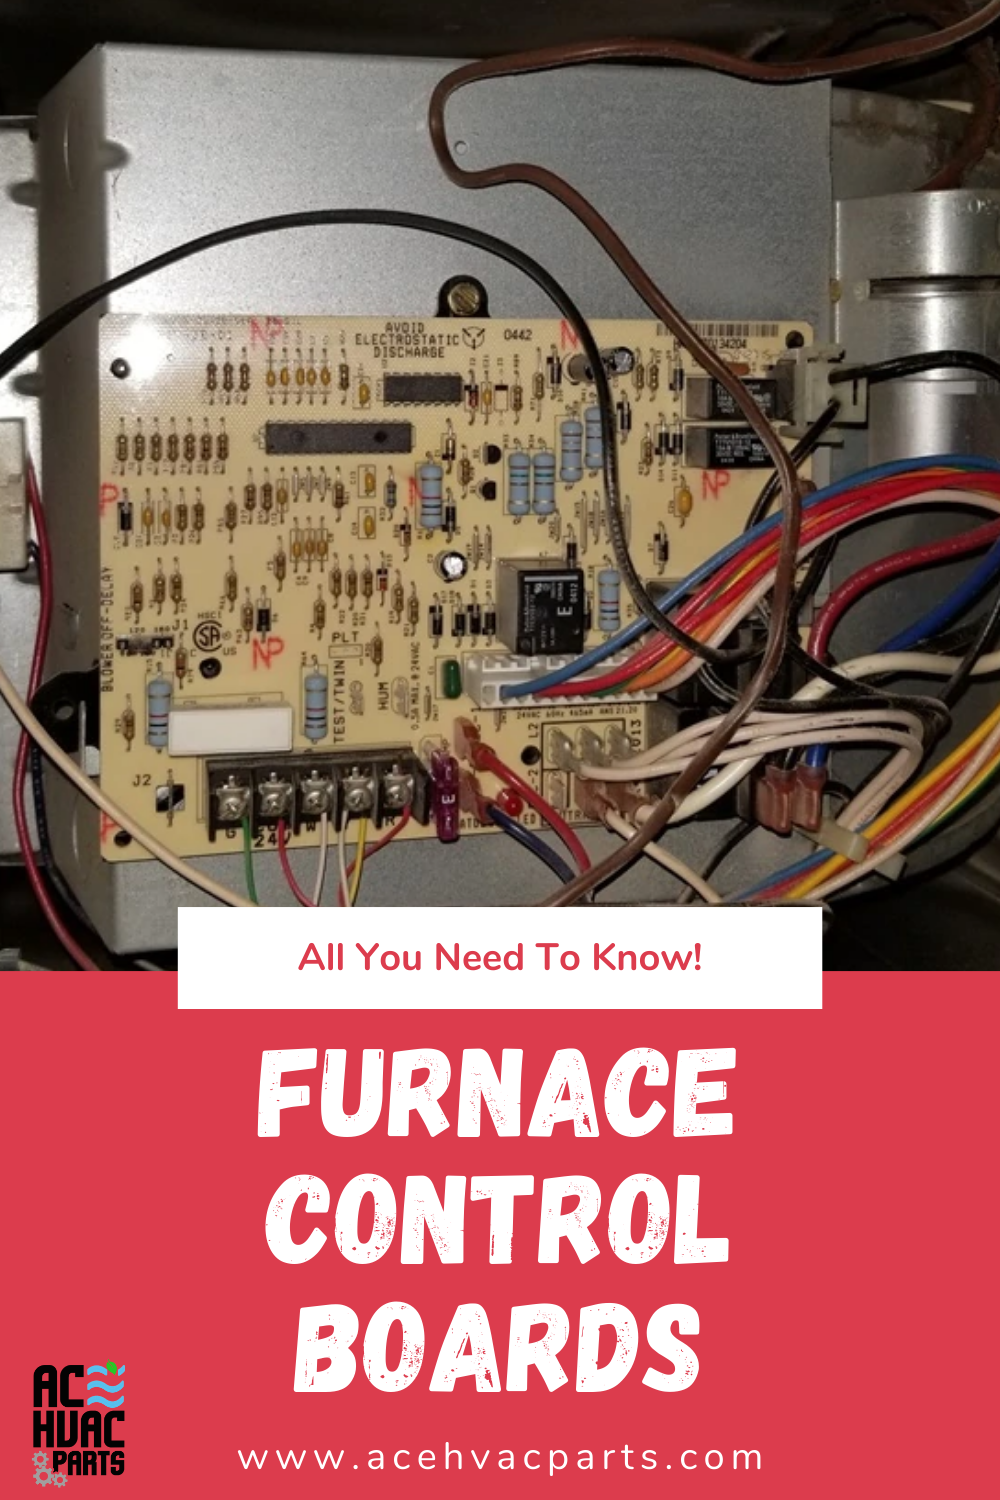 All You Need To Know About Furnace Control Boards in 2020